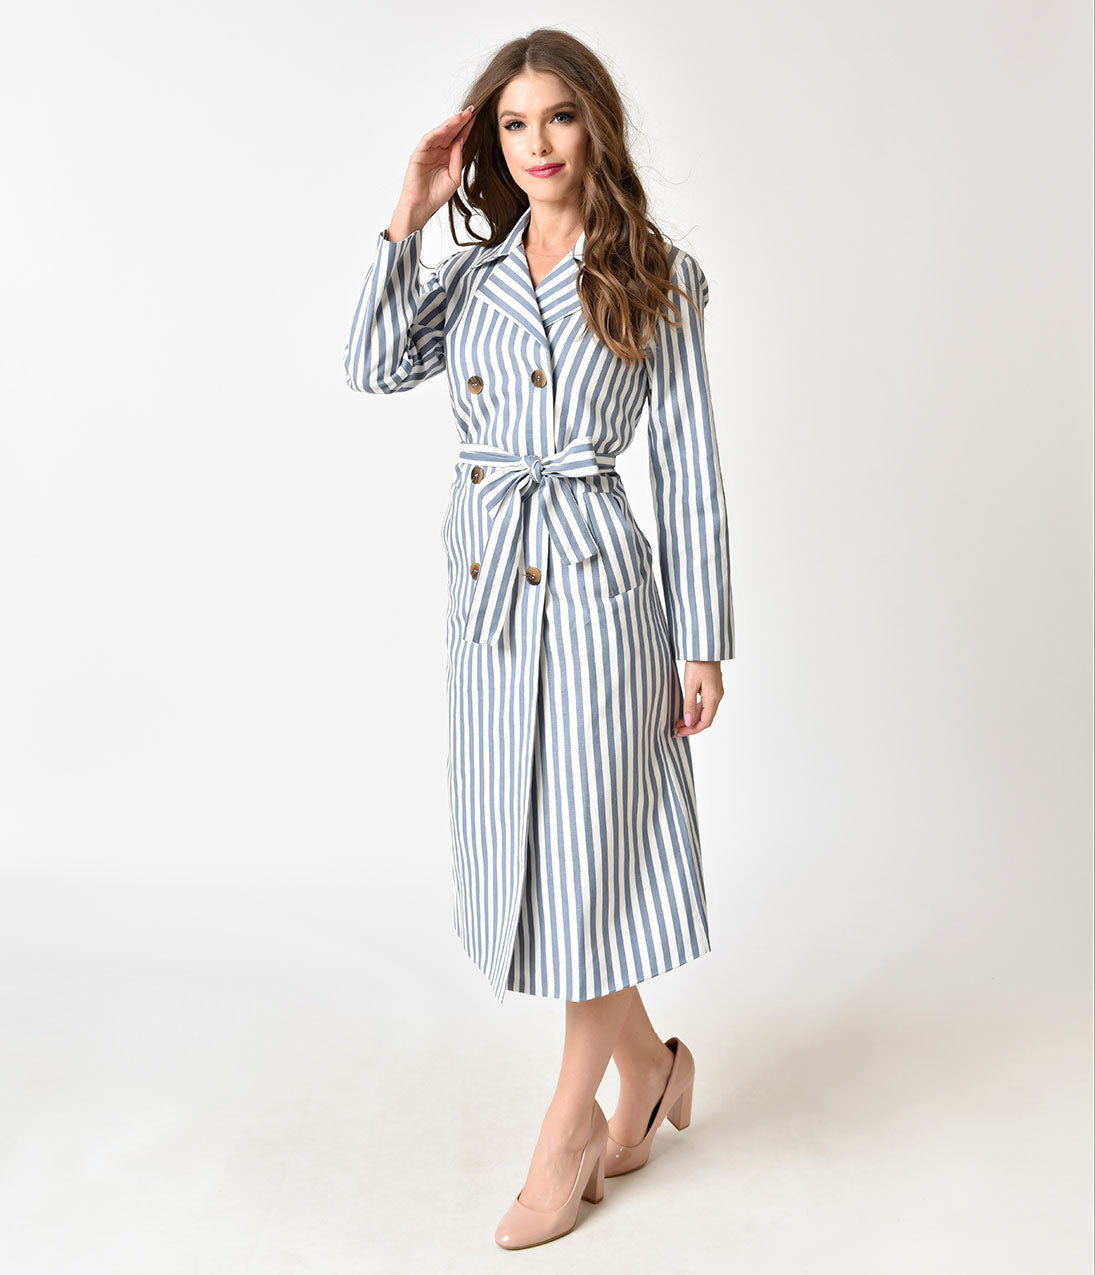 1950s Jackets and Coats | Swing, Pin Up, Rockabilly Light Blue  White Striped Cotton Button Up Coat $74.00 AT vintagedancer.com